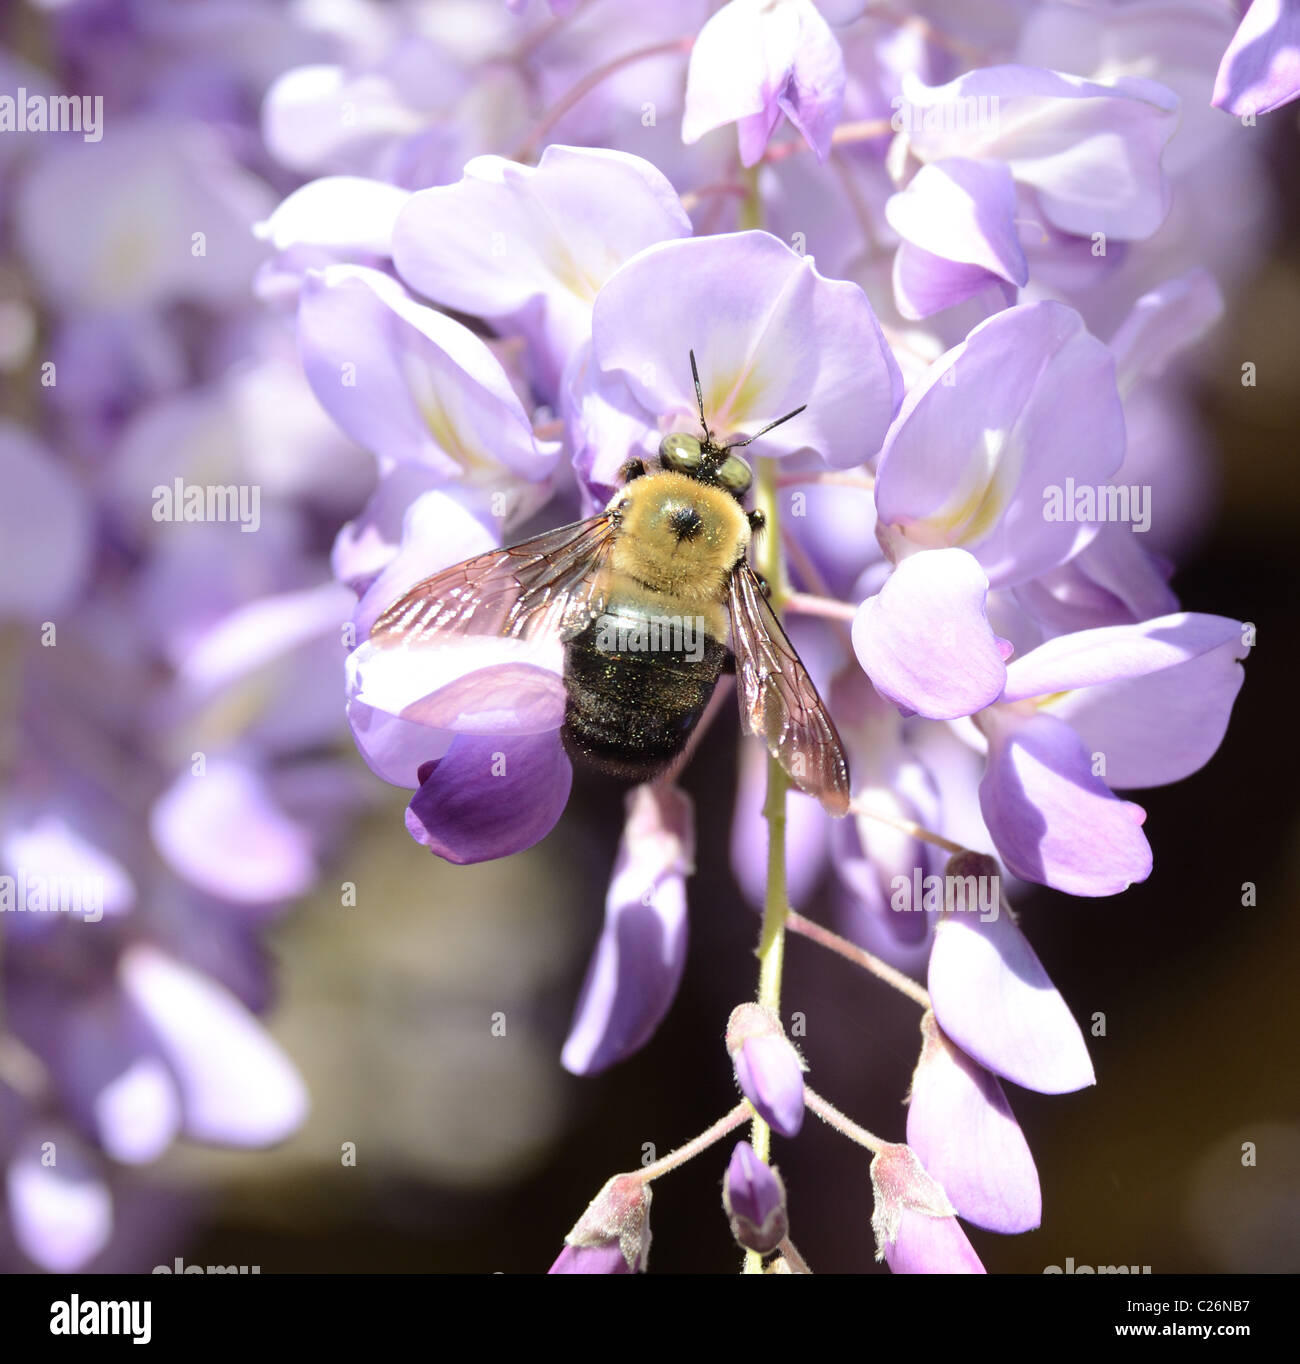 A carpenter bee collecting pollen from a Wisteria flower. - Stock Image